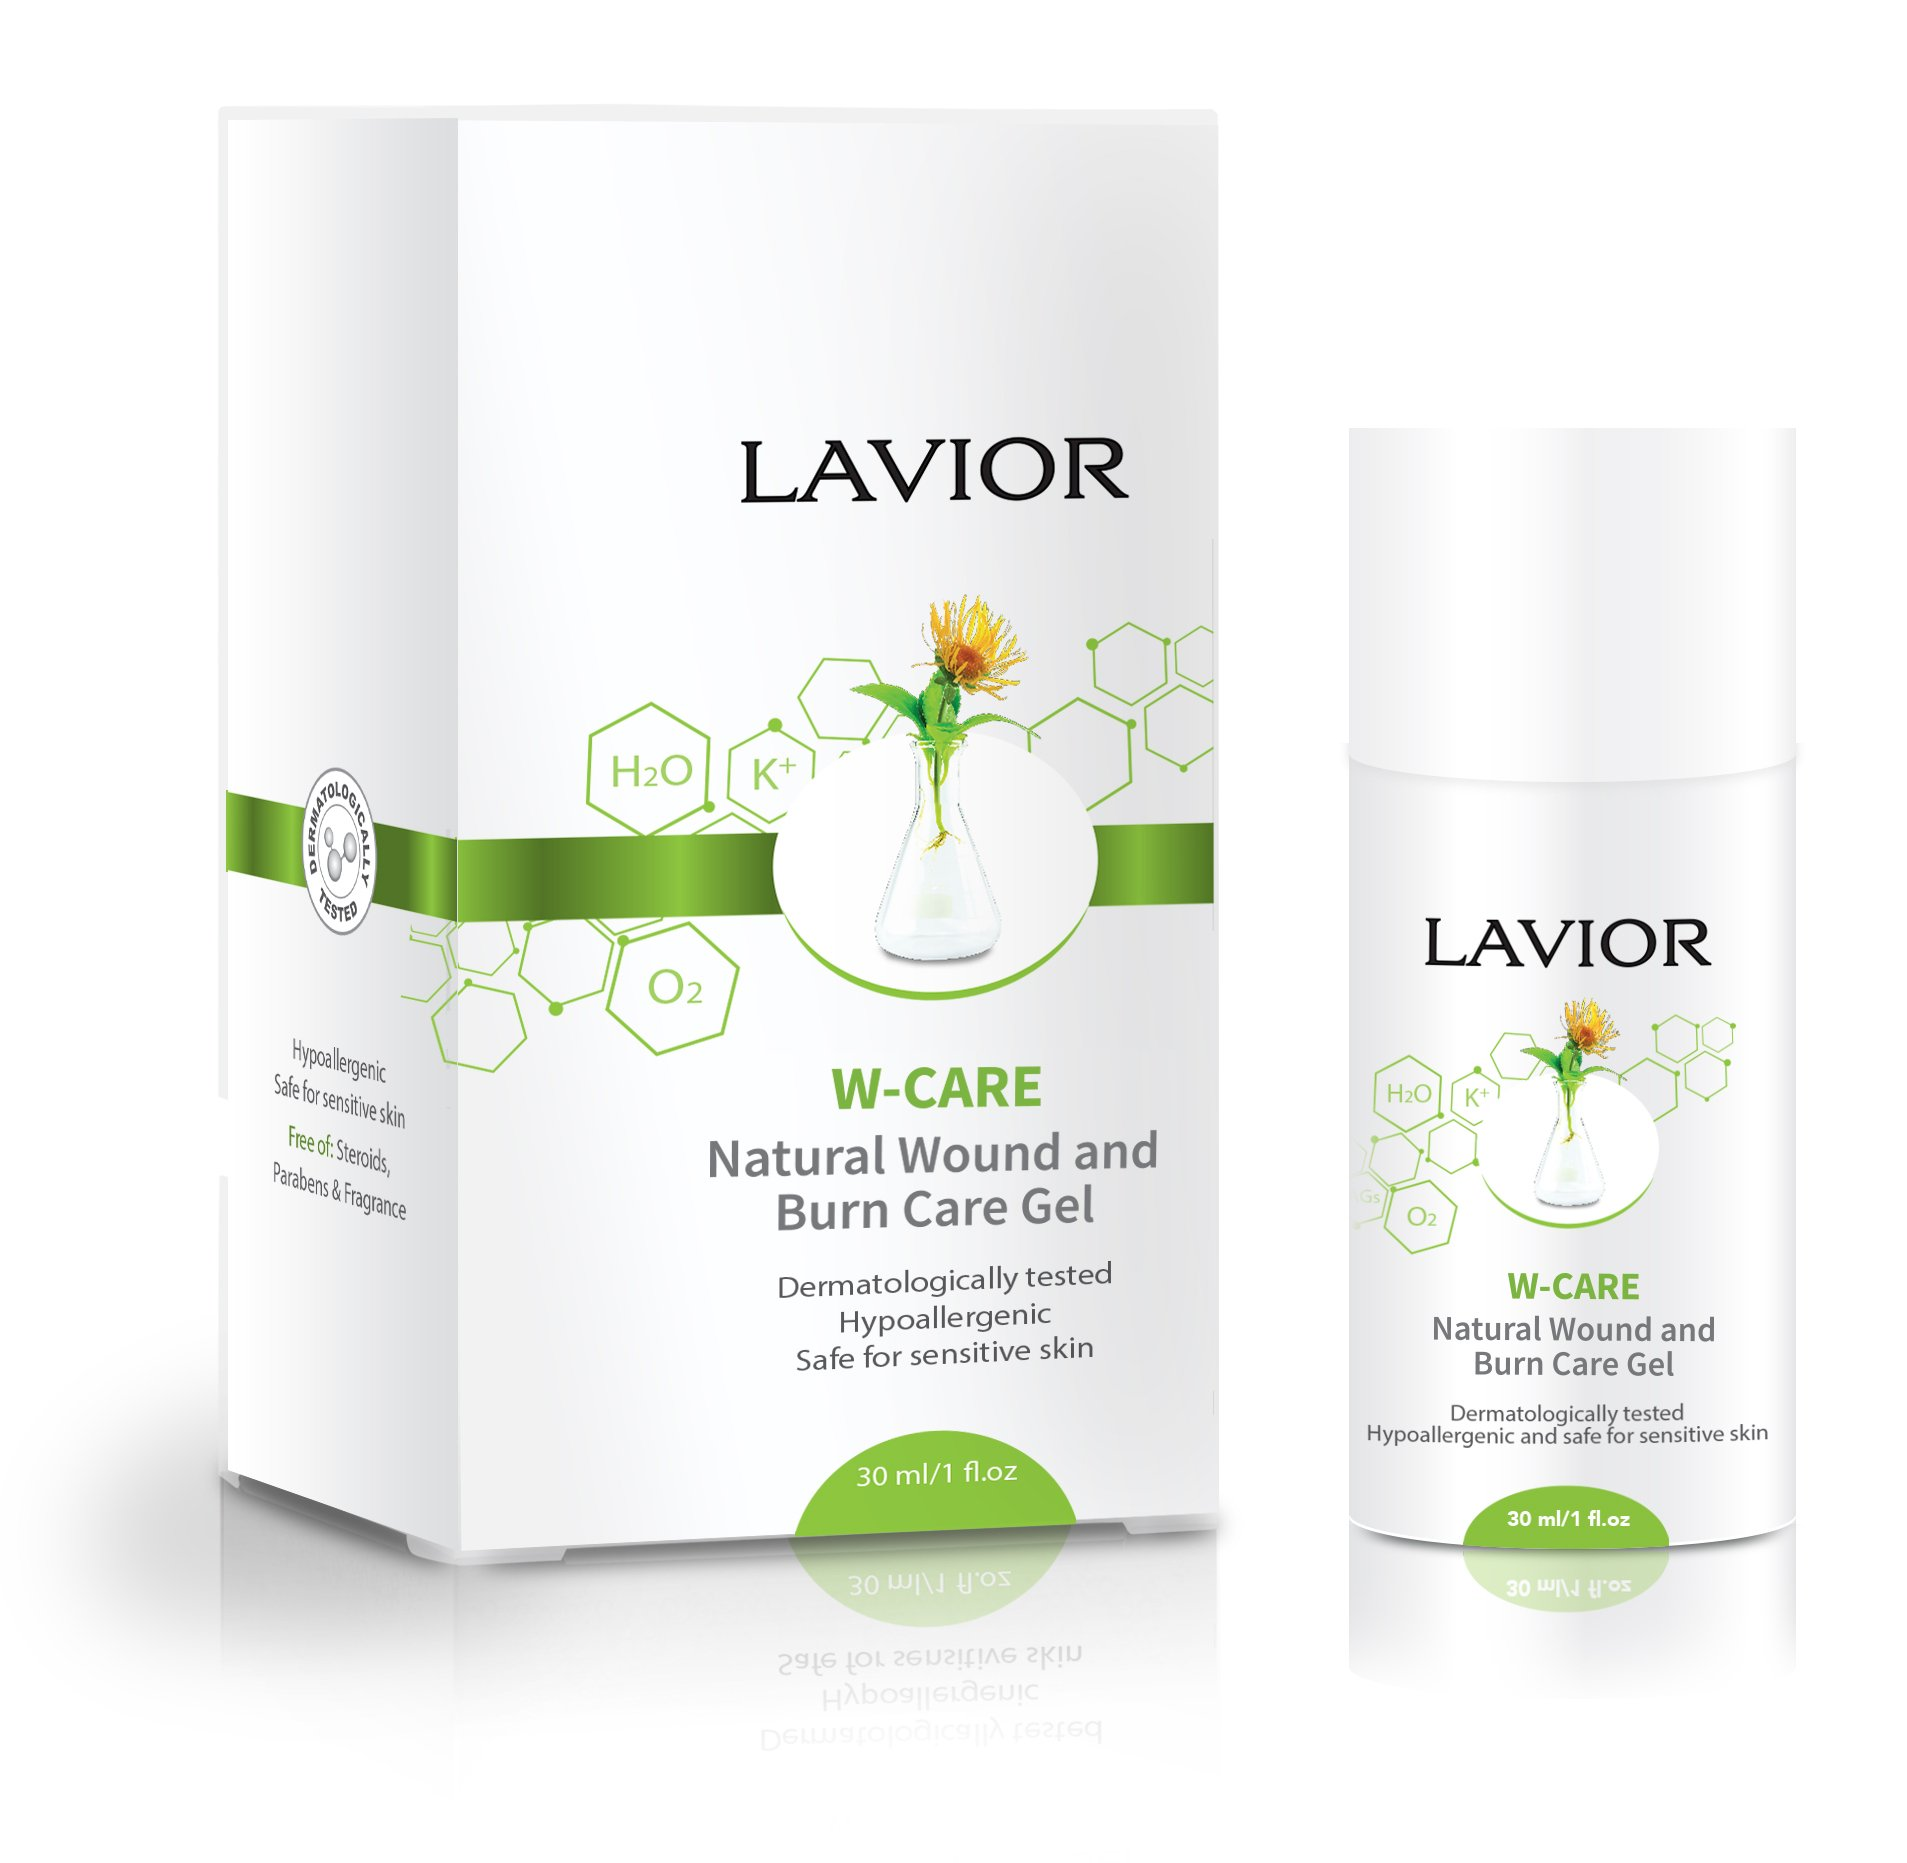 LAVIOR W-Care Natural Wound and Burn Care Gel - Anti-Inflammatory, Antibacterial for Wounds, Burns, Cuts, Scrapes - Clinically Proven, Dr Recommended